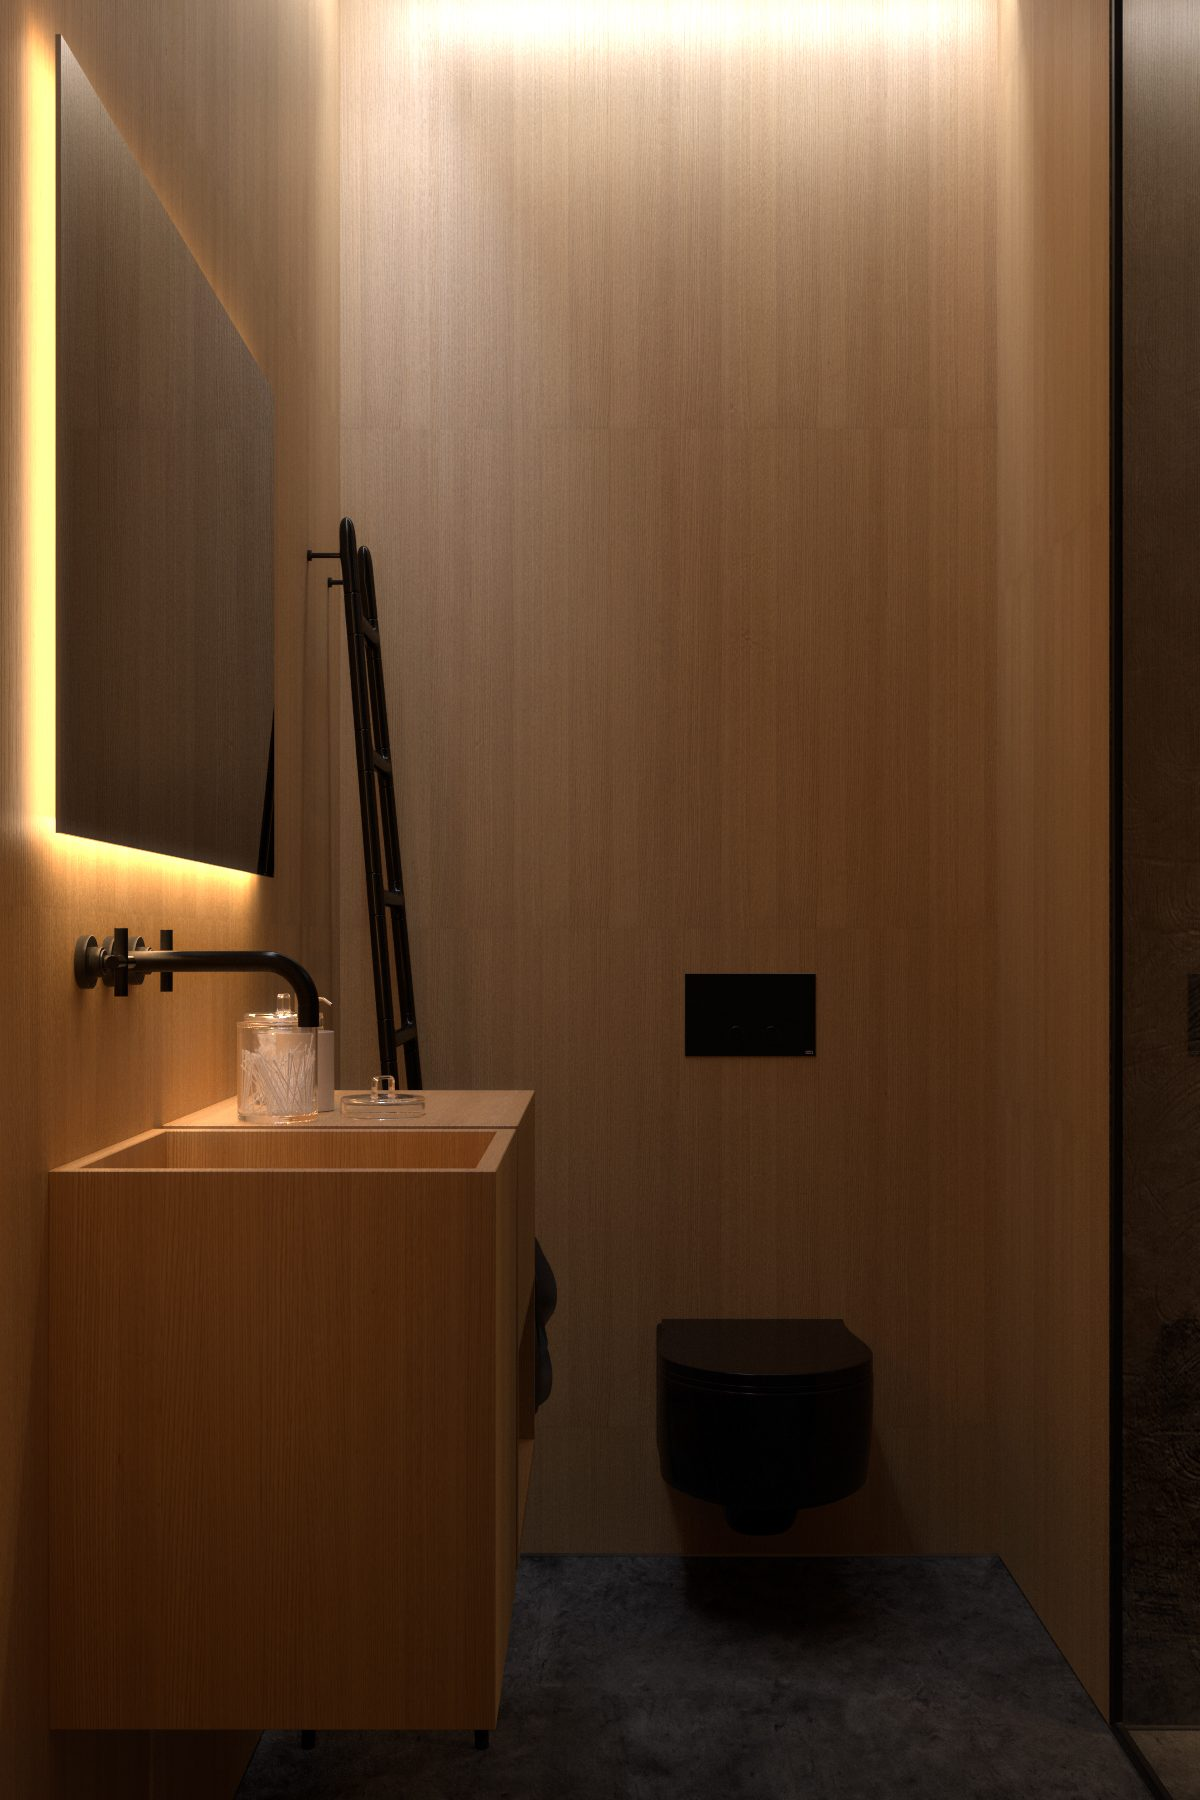 Dark bathroom interior style